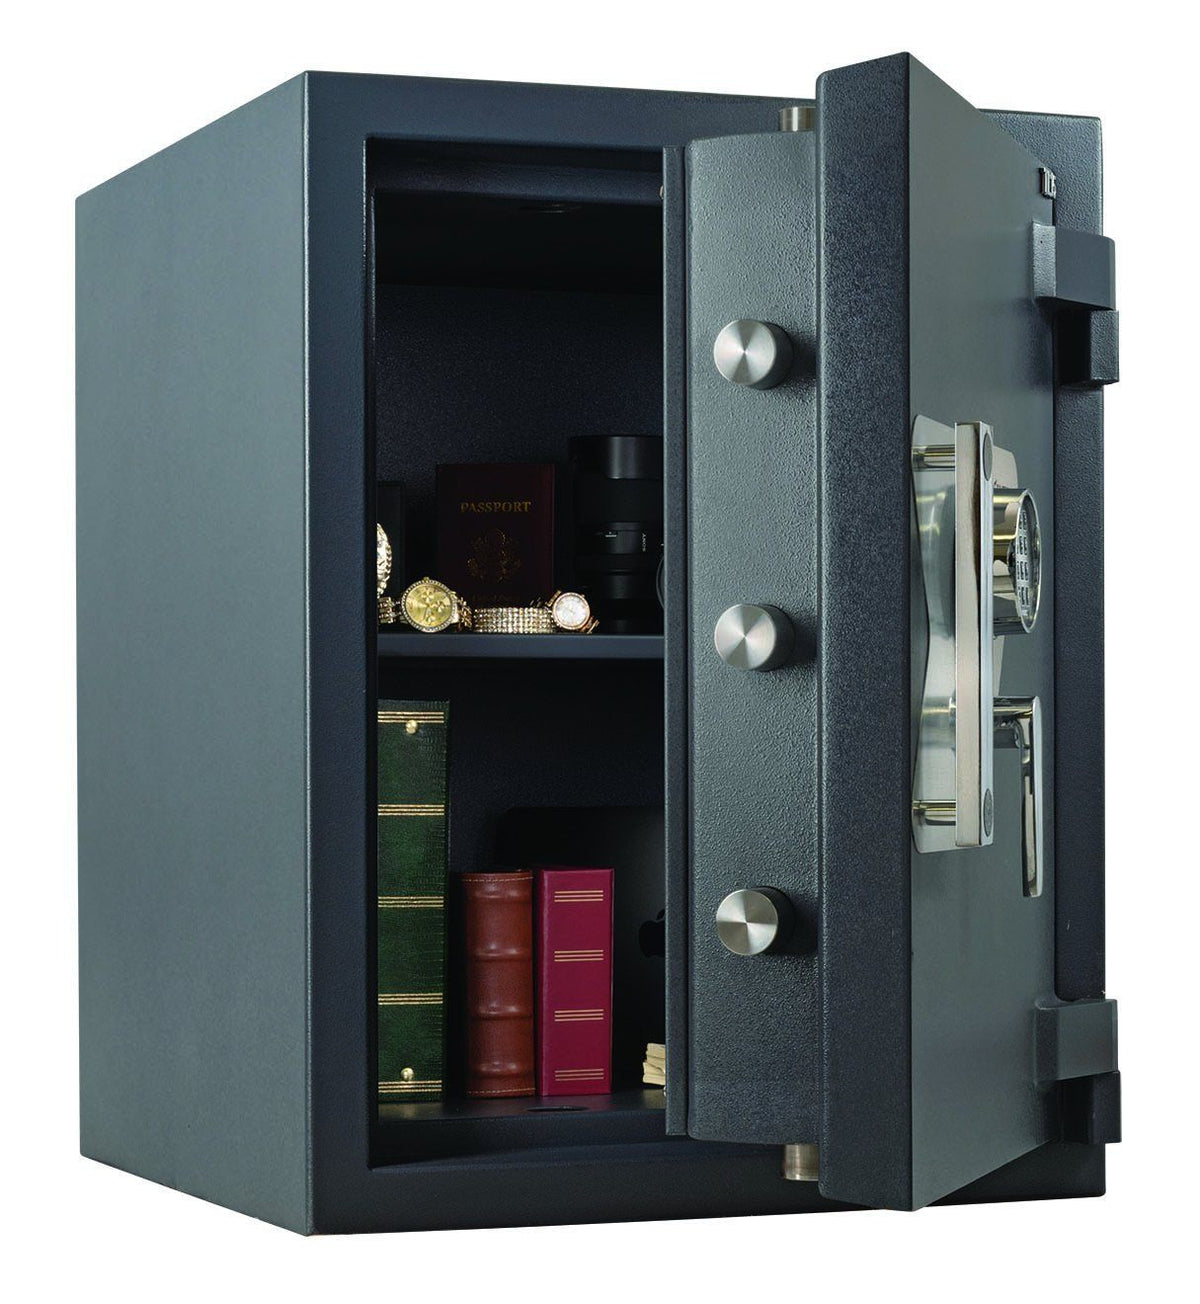 High Security Burglar Fire Safes - AMSEC MAX2518 High Security UL Listed TL-15 Composite Safe